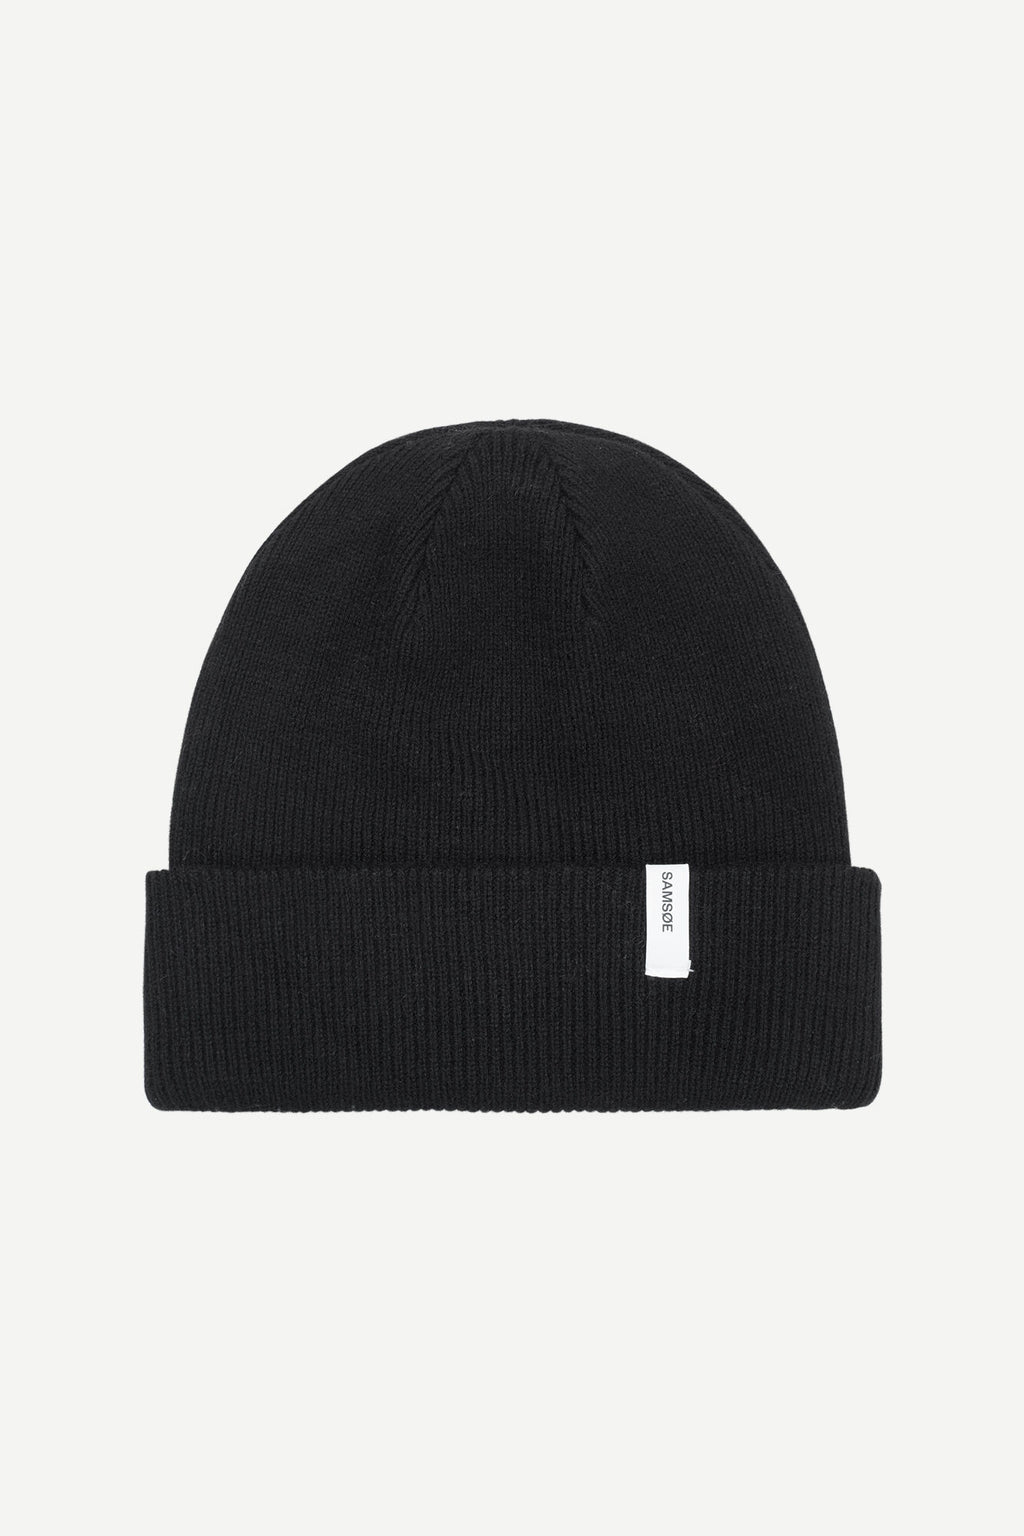 Samsøe Samsøe The Beanie Black